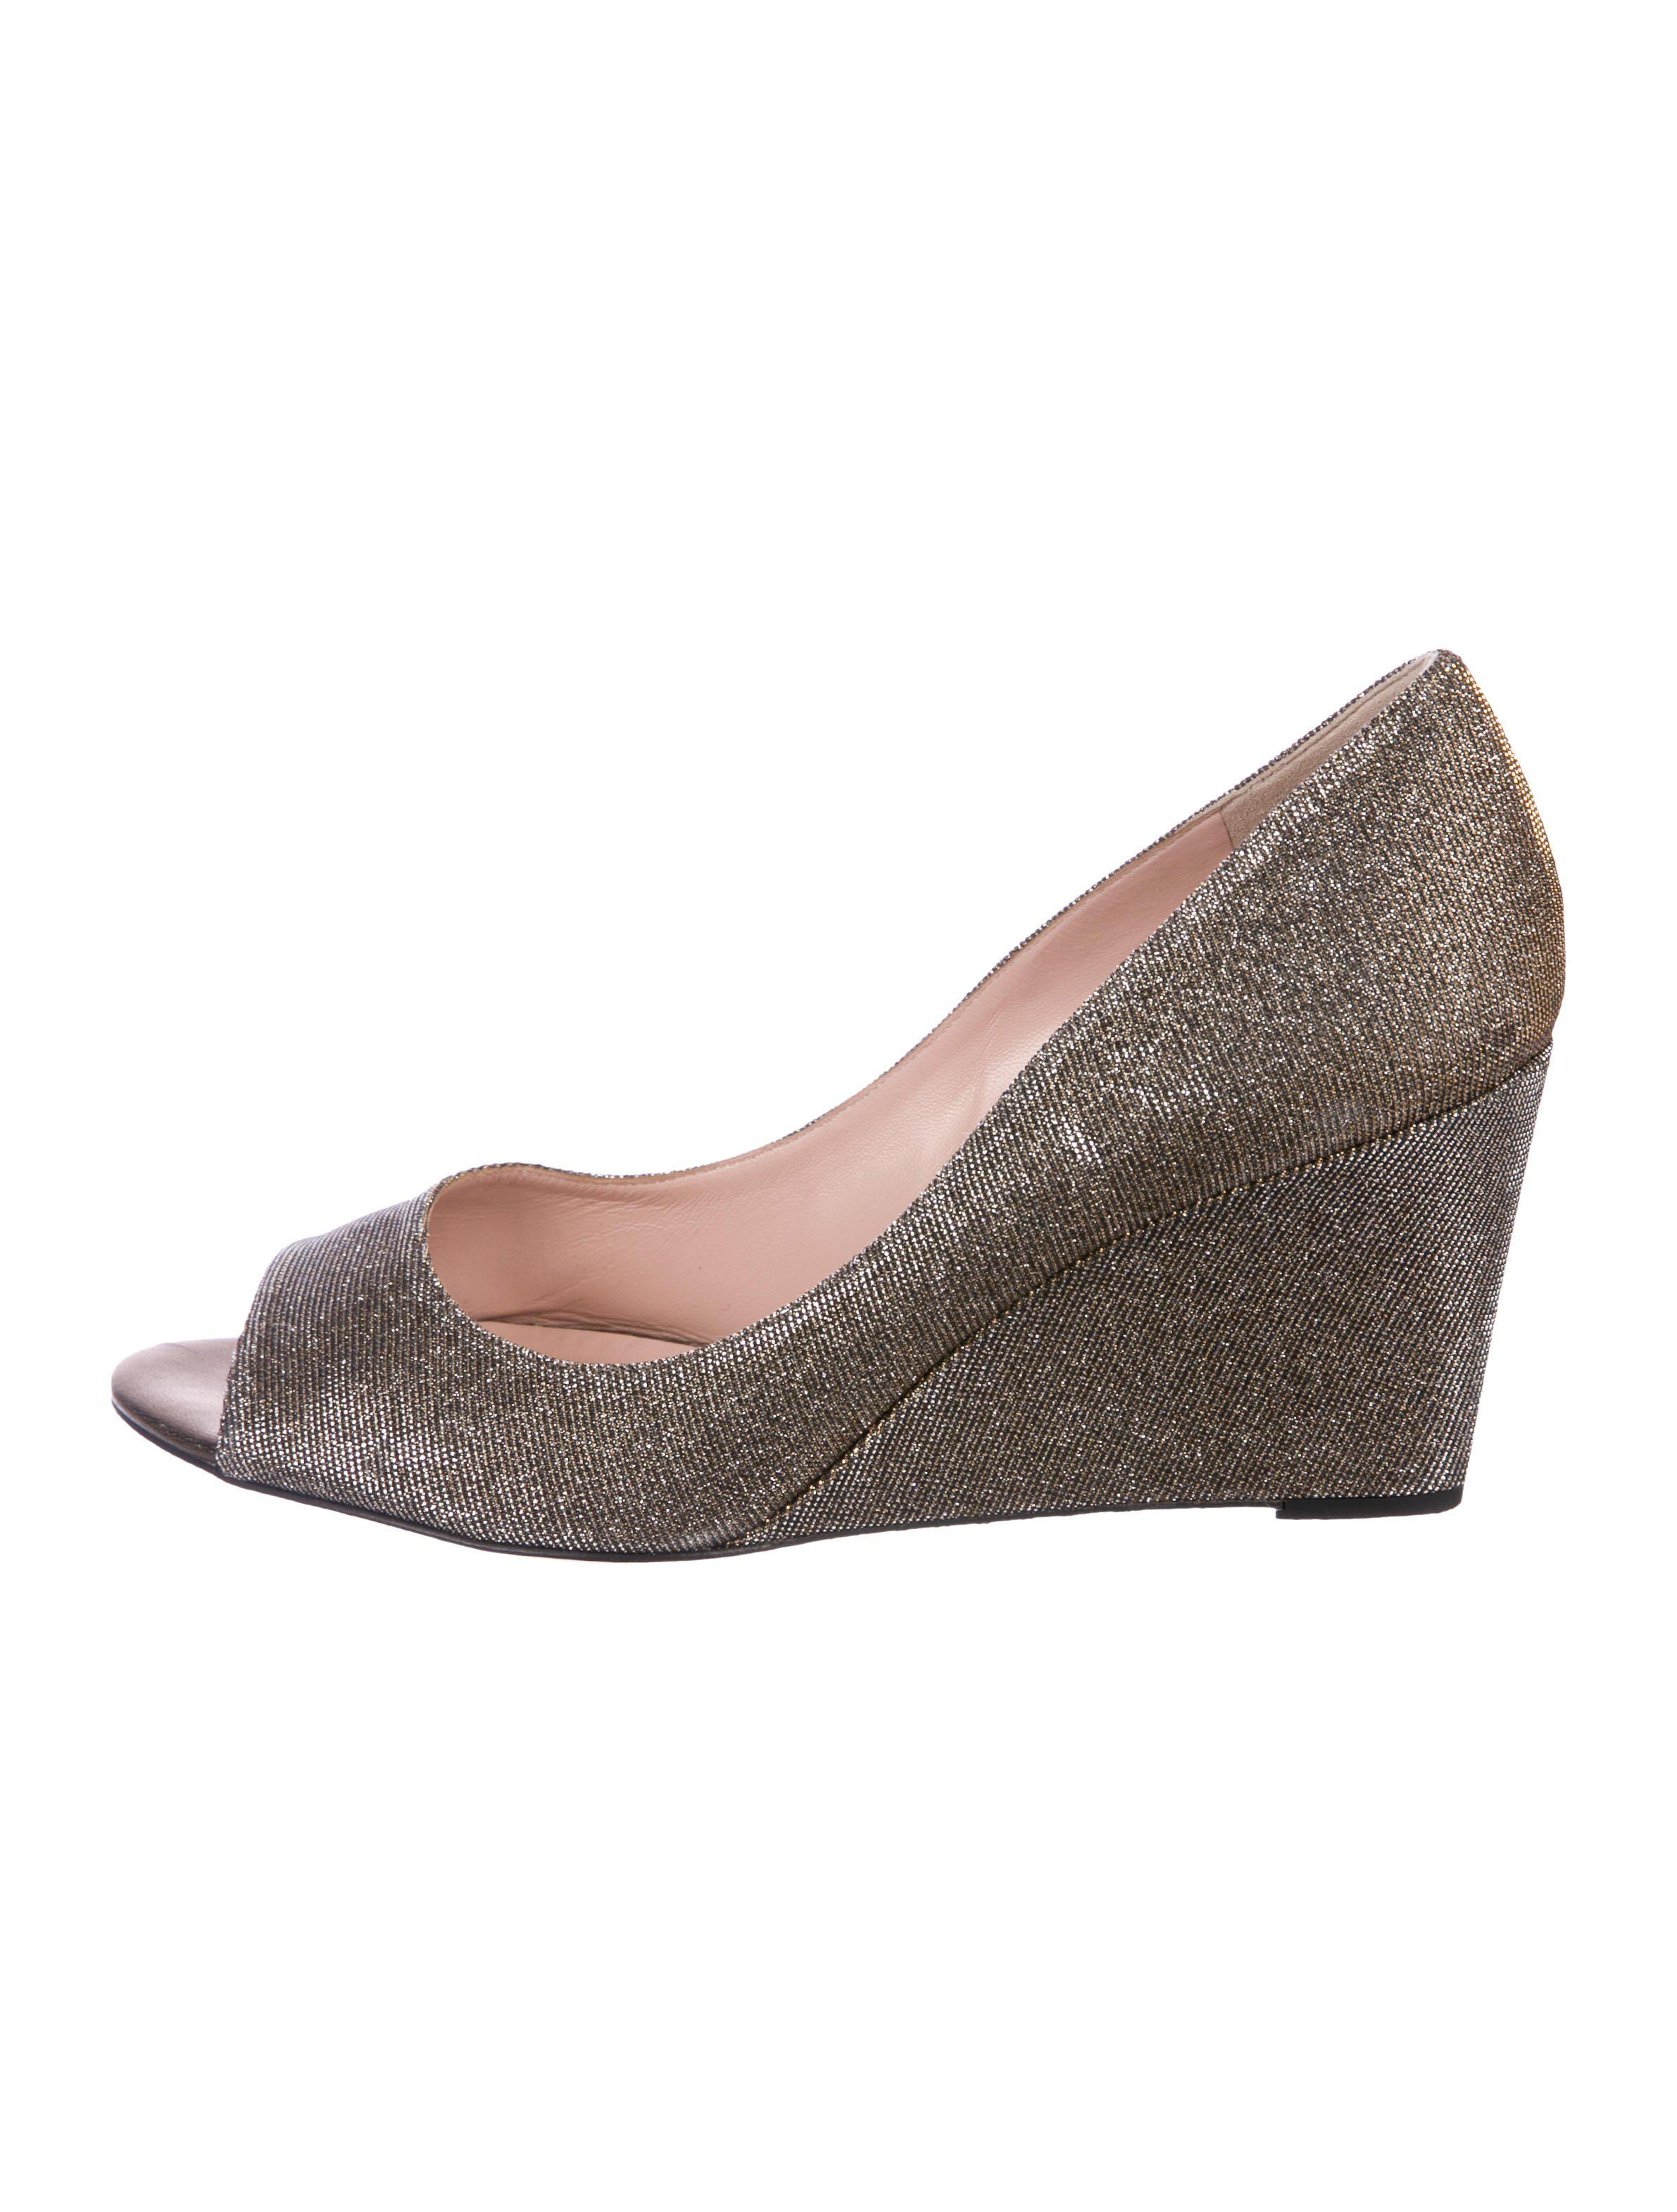 20a87bf2e7c9 Lyst - Kate Spade Glitter Canvas Wedges in Metallic